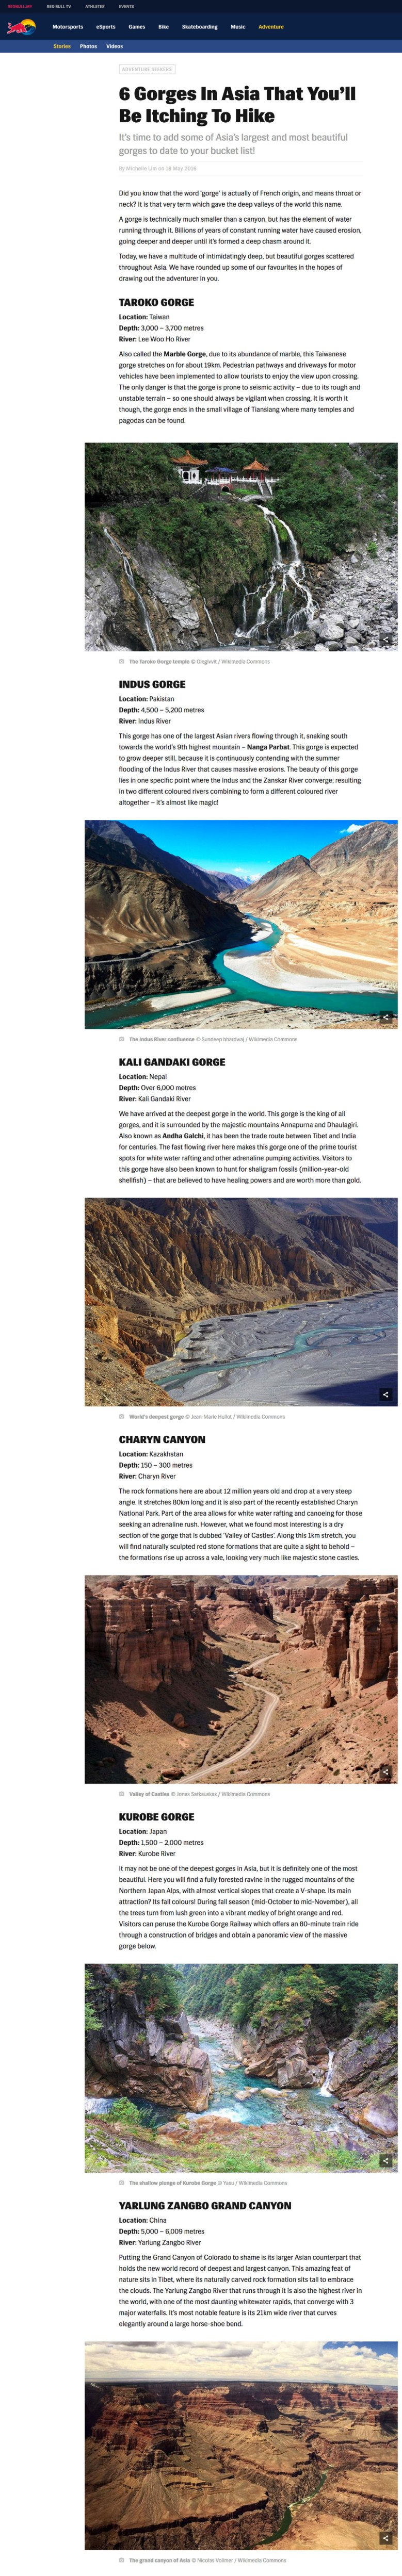 6-Gorges-In-Asia- Red-Bull-Adventure